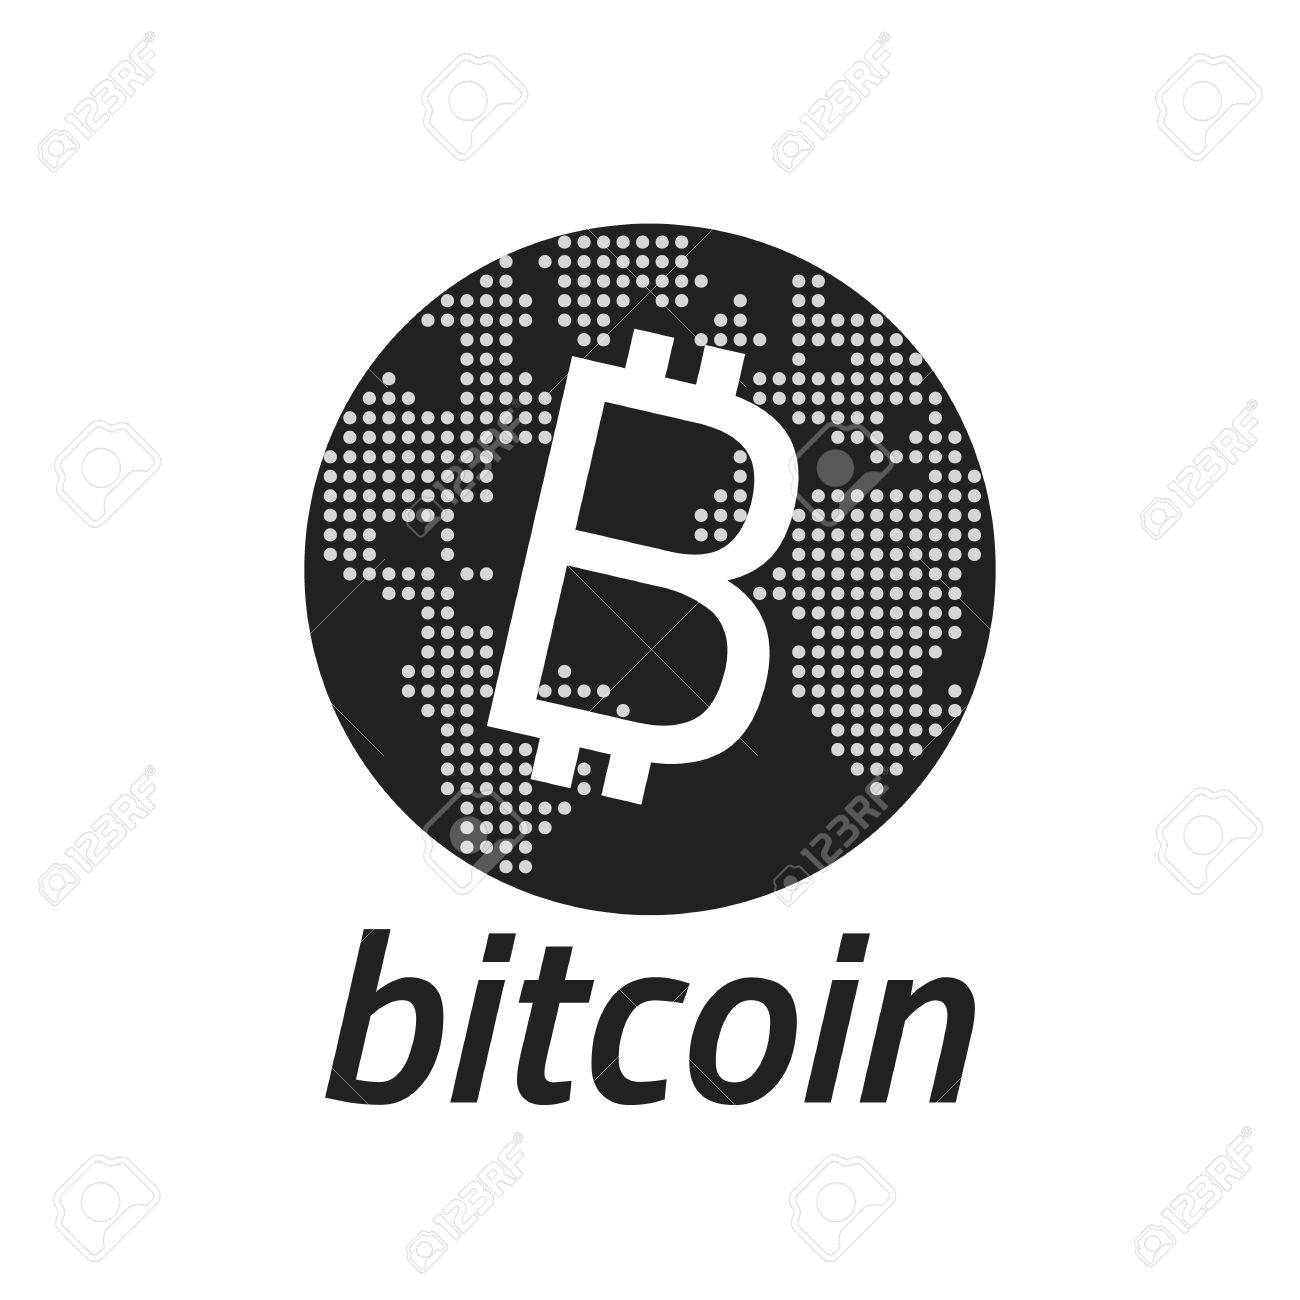 Bitcoin Logo And Dotted World Map Editable Eps10 Vector Transparent Background Stock